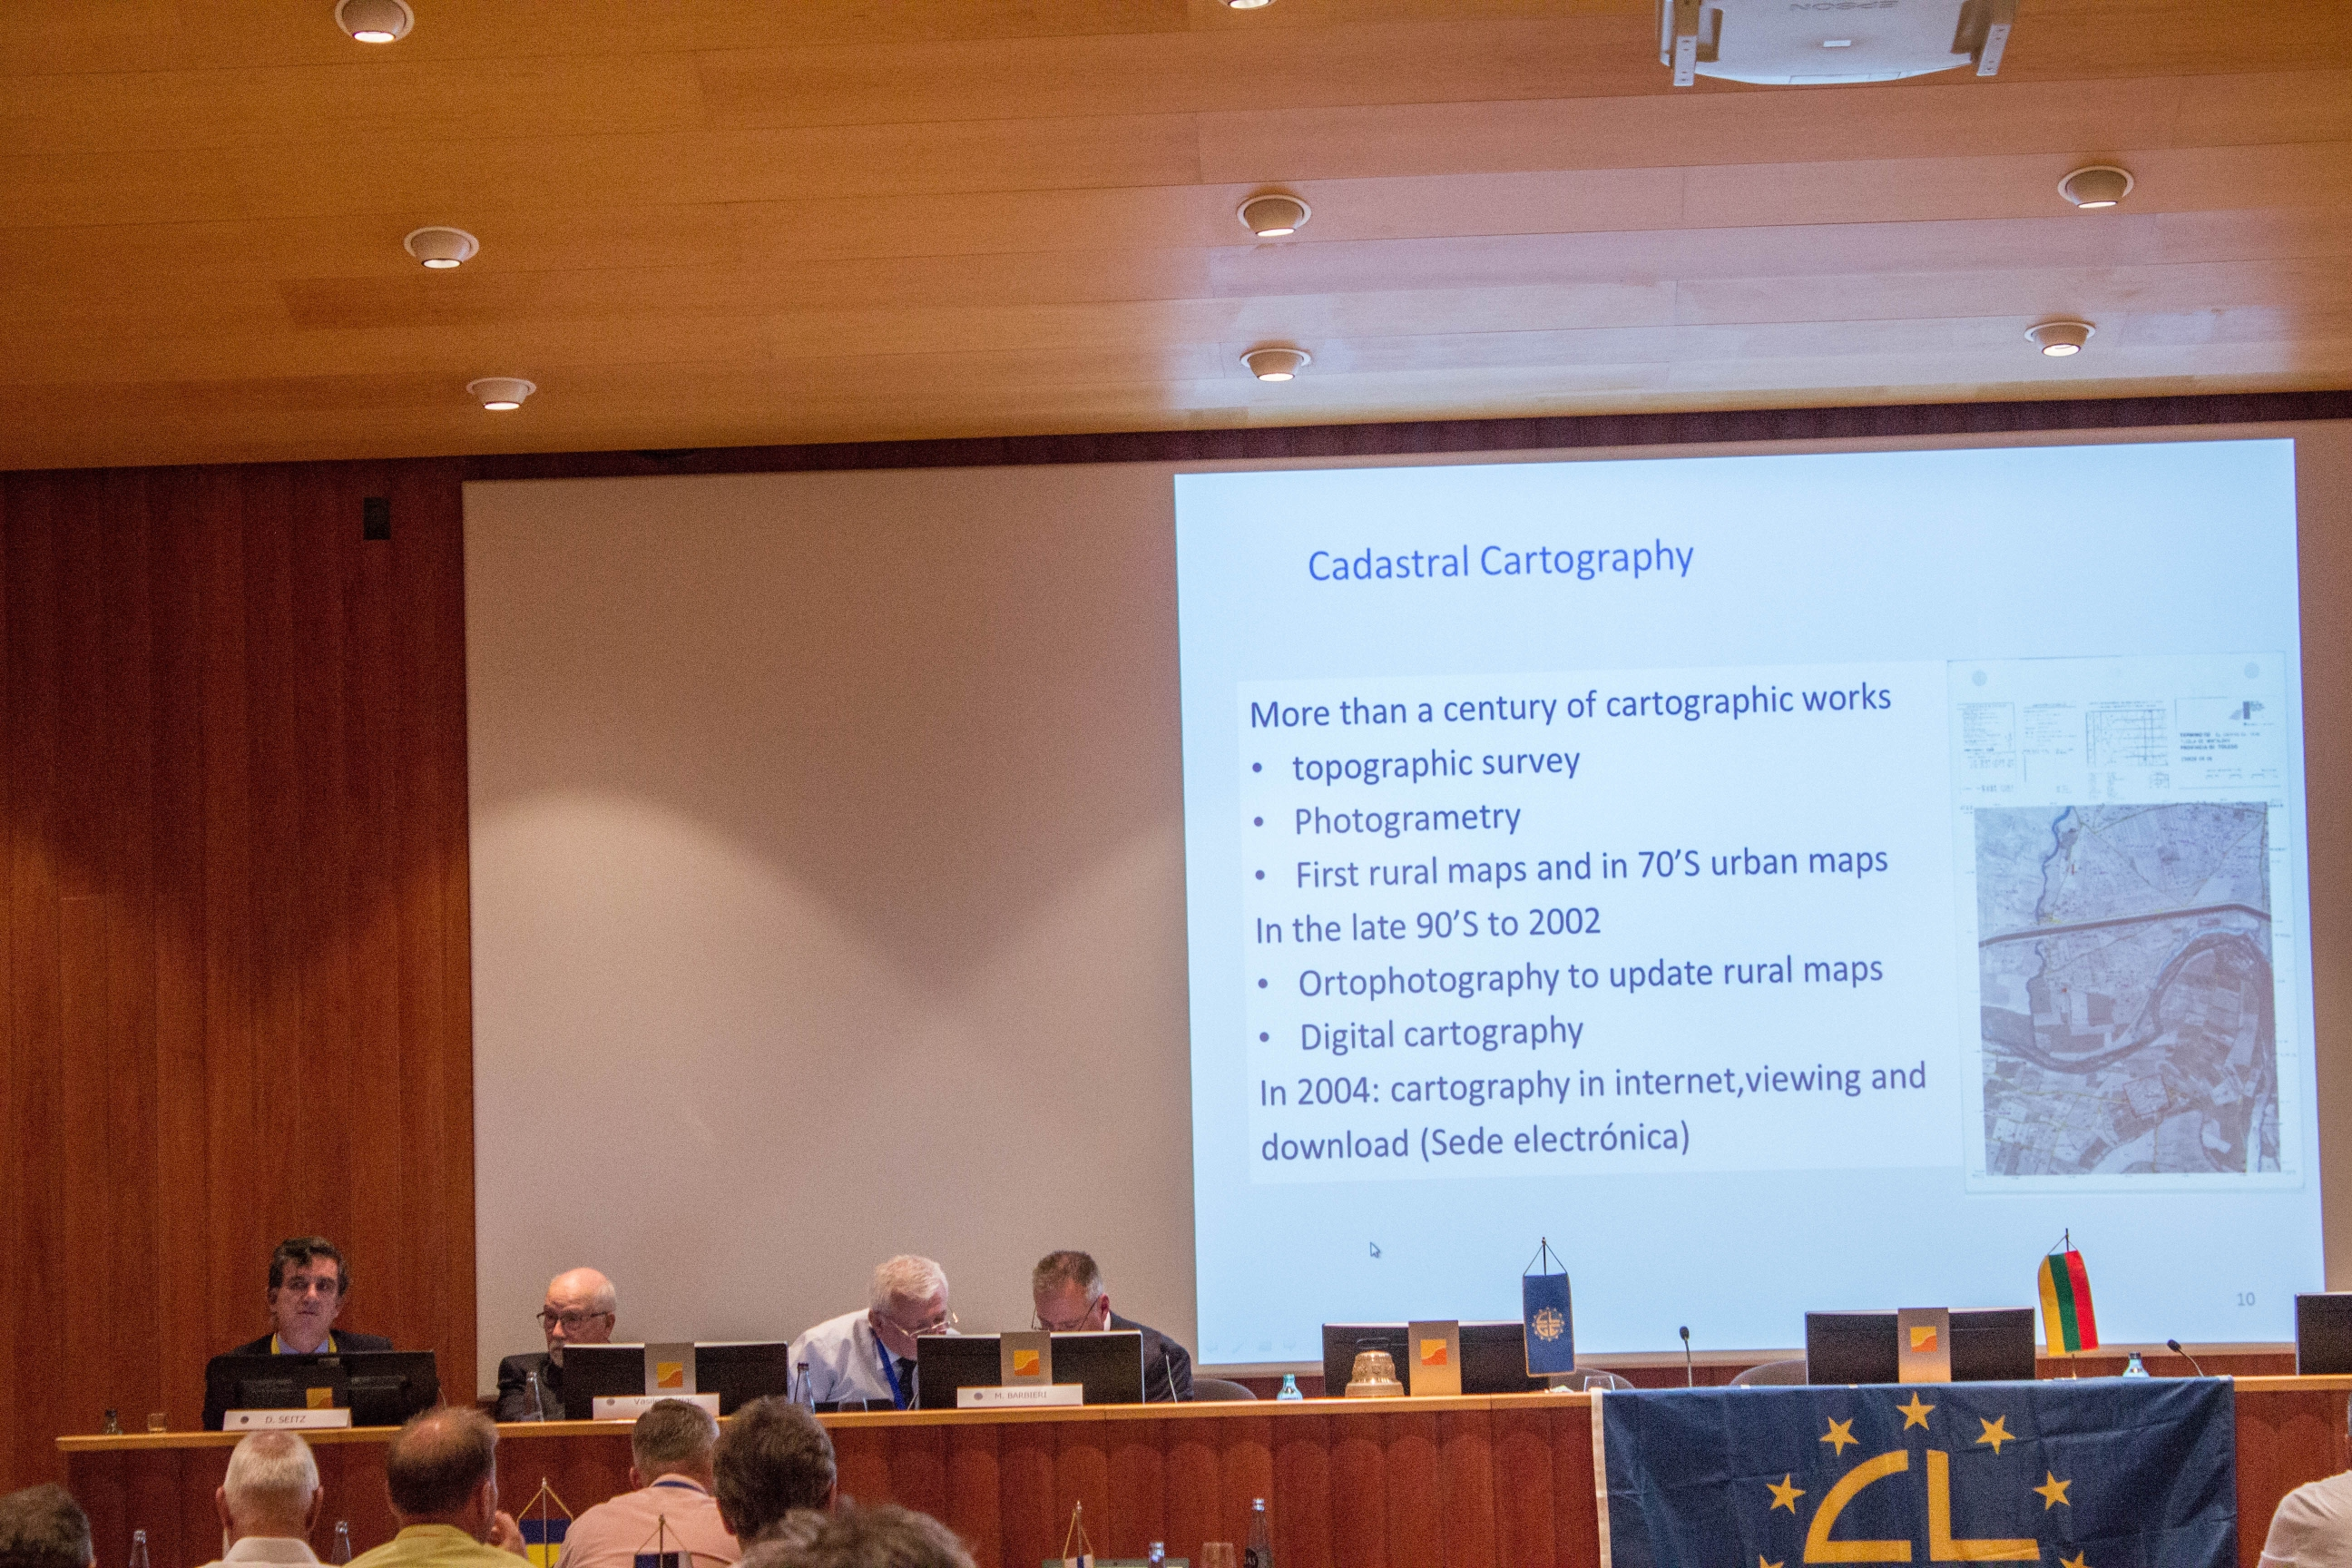 clge-general-assembly-barcelona-2018_45240016831_o.jpg